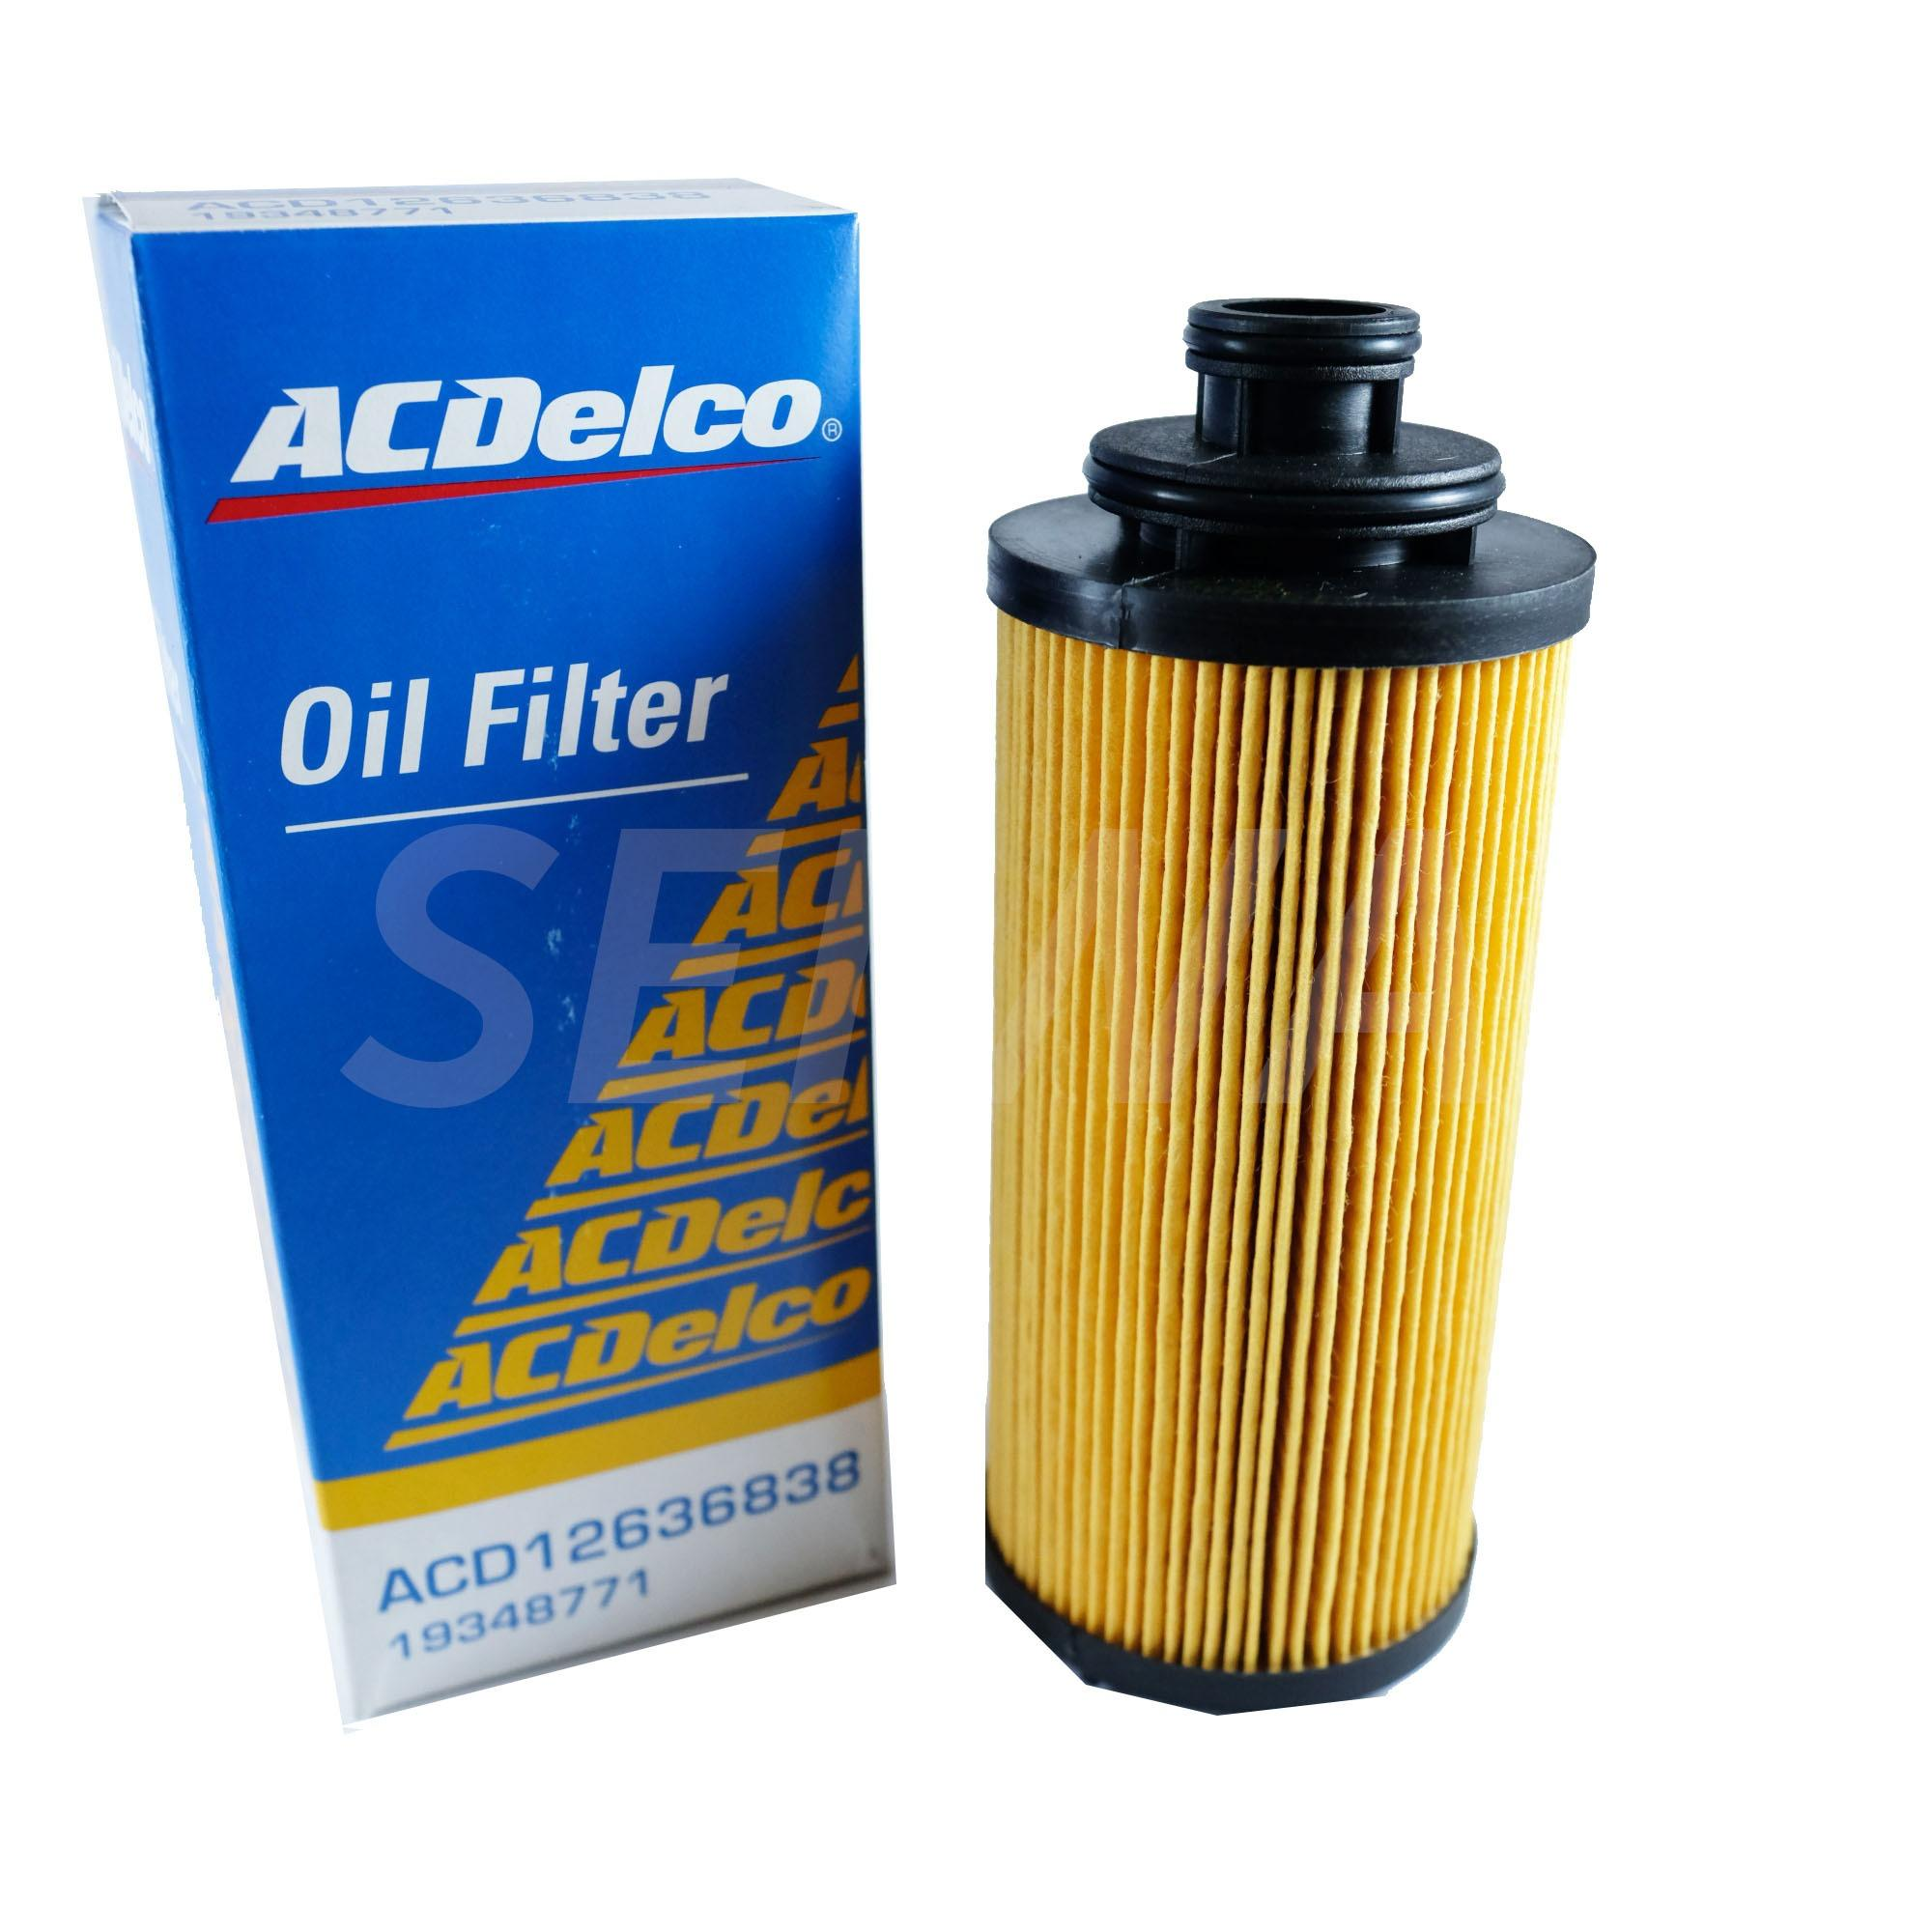 Oil Filter For Sale Adapter Online Brands Prices 2002 Explorer Fuel Genuine Chevrolet Auto Parts 12636838 Trailblazer And Colorado